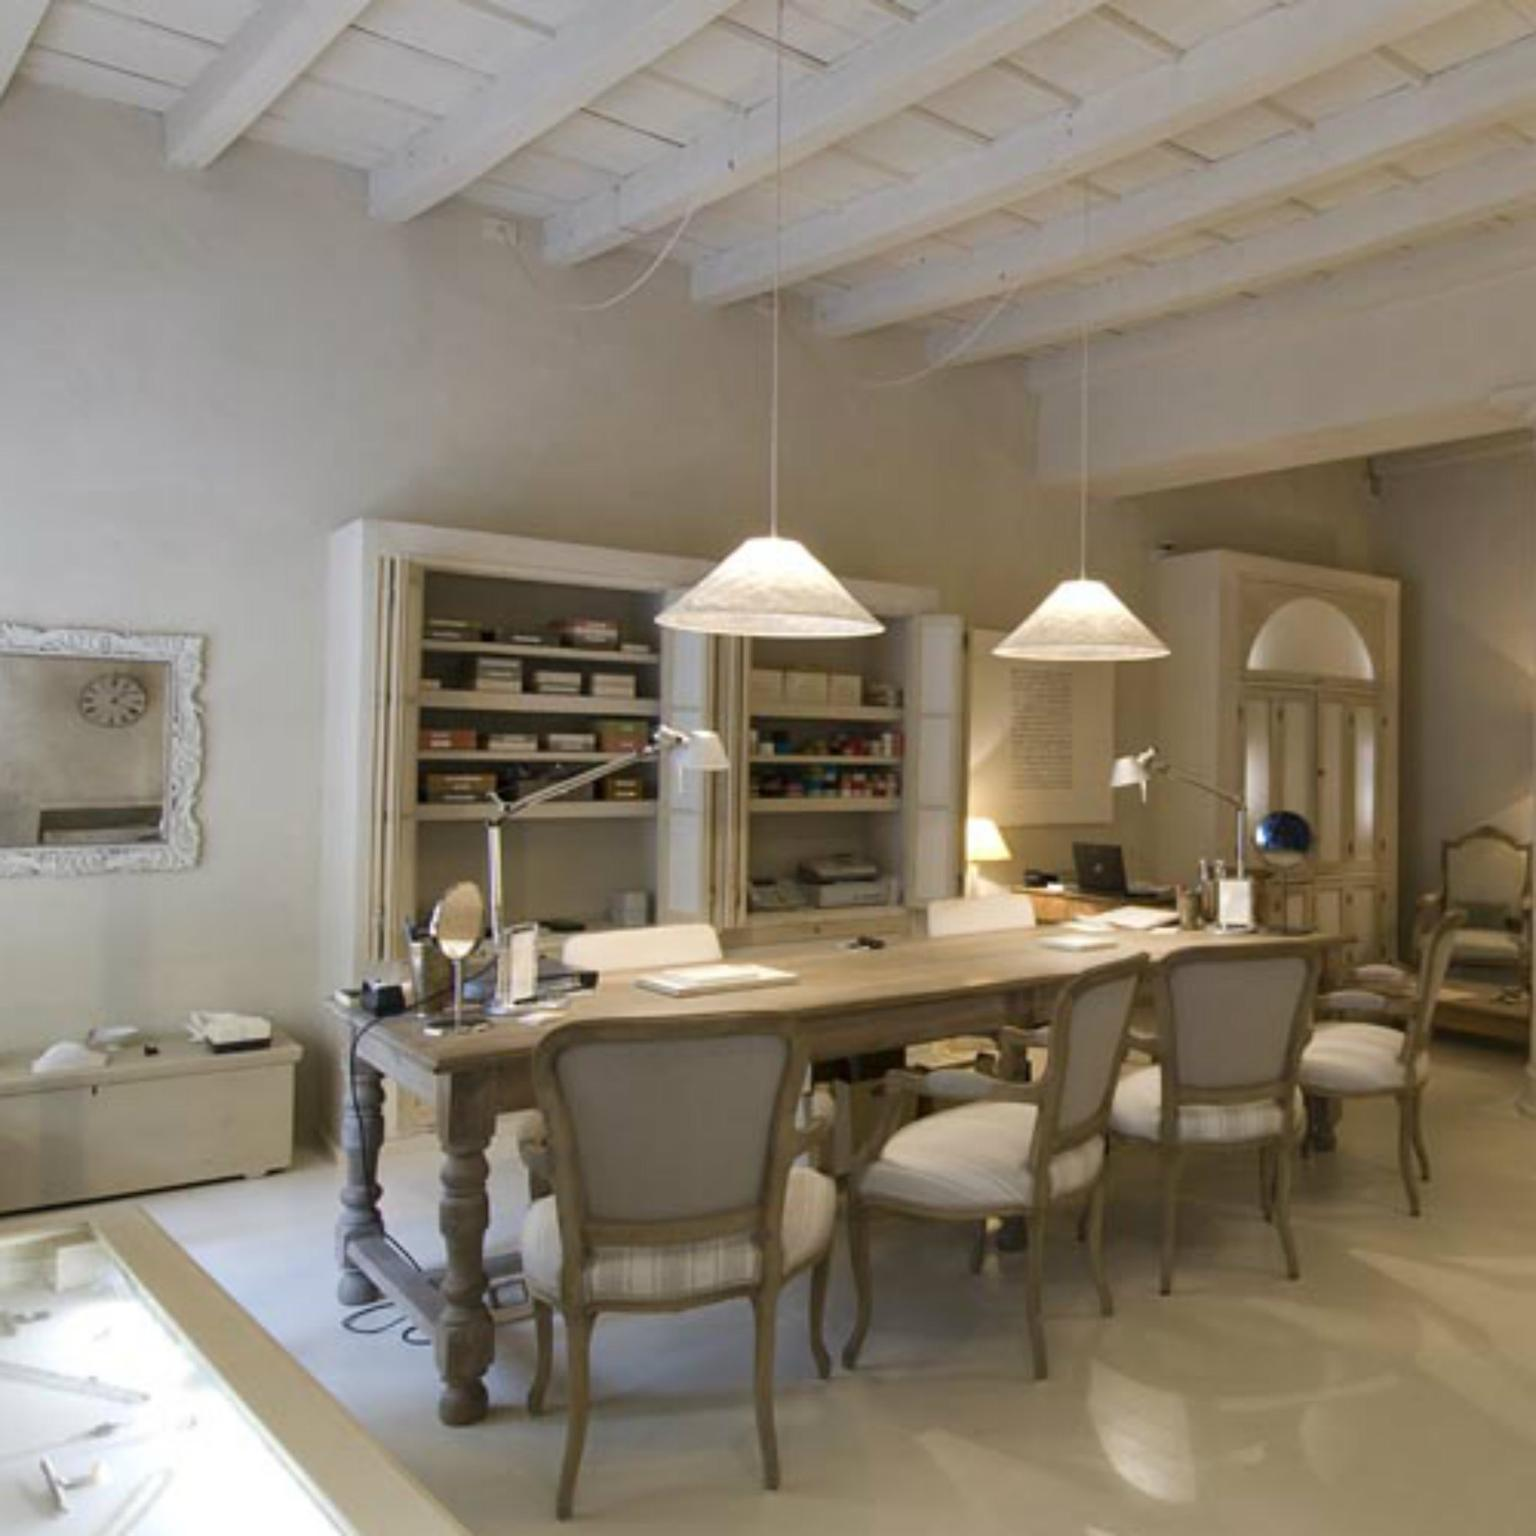 Anaconda jewellery boutique in Milan